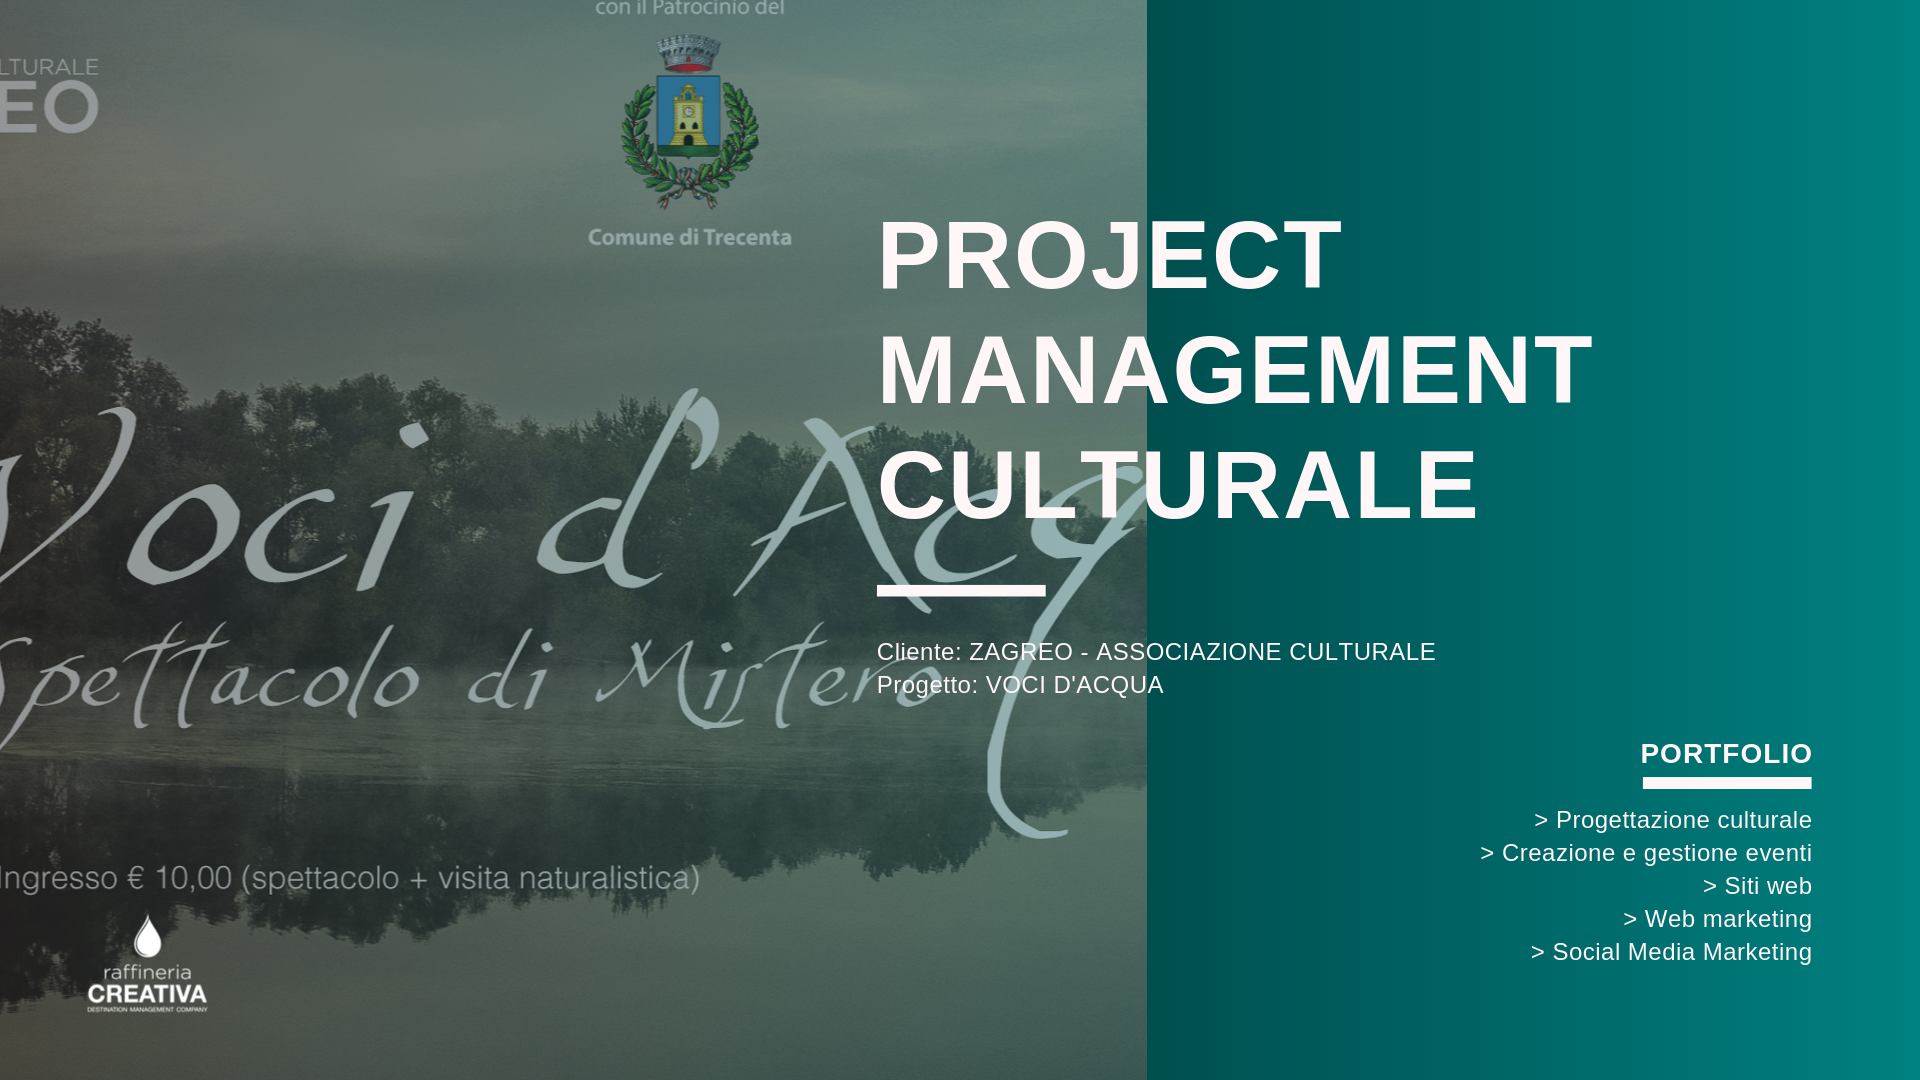 voci d'acqua - project management culturale